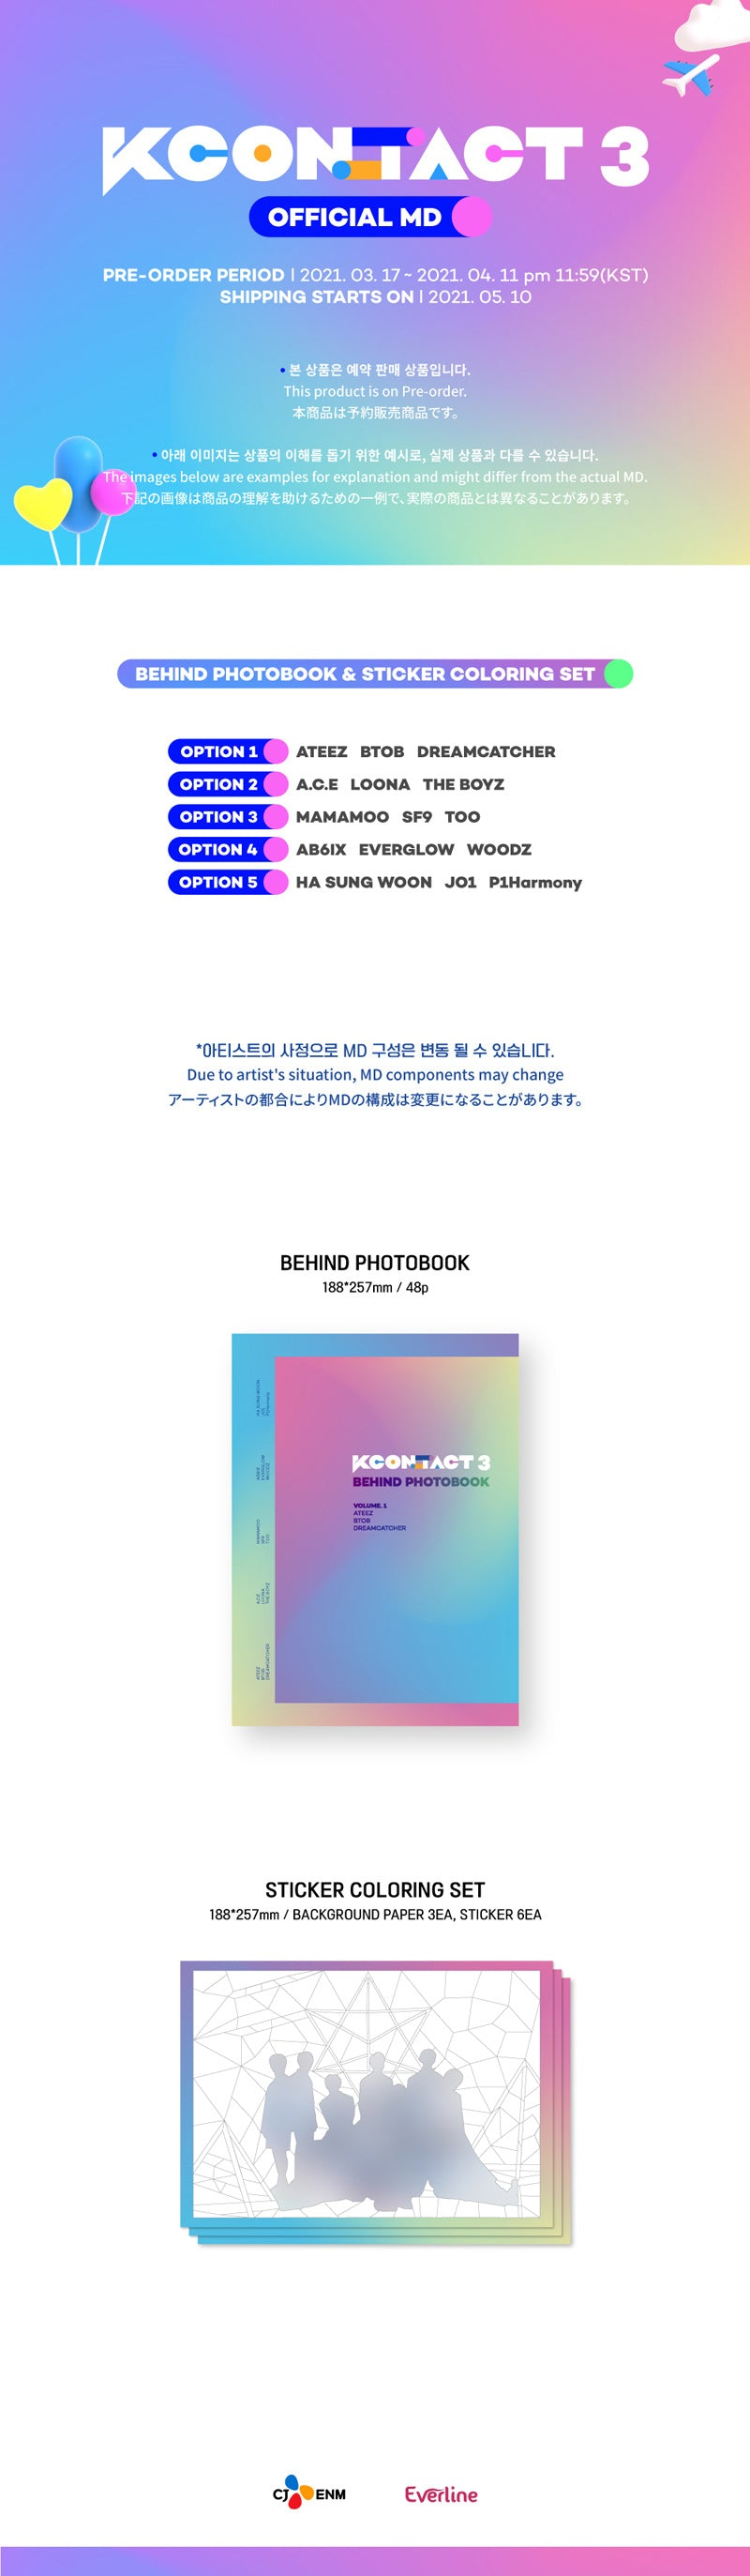 KCON: TACT3 Official MD [Behind Photobook & Sticker Coloring Set]